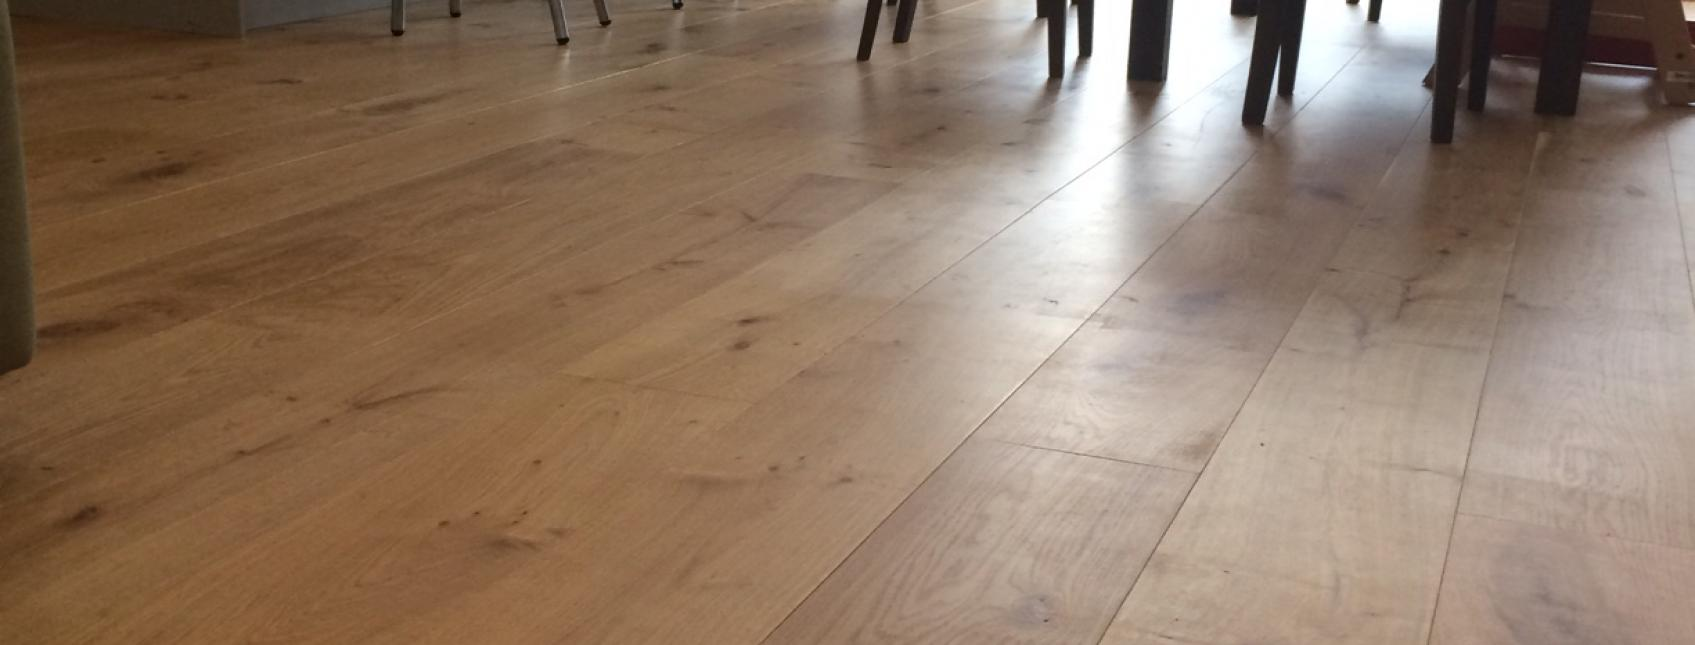 Engineered wood flooring at a house in Harrow